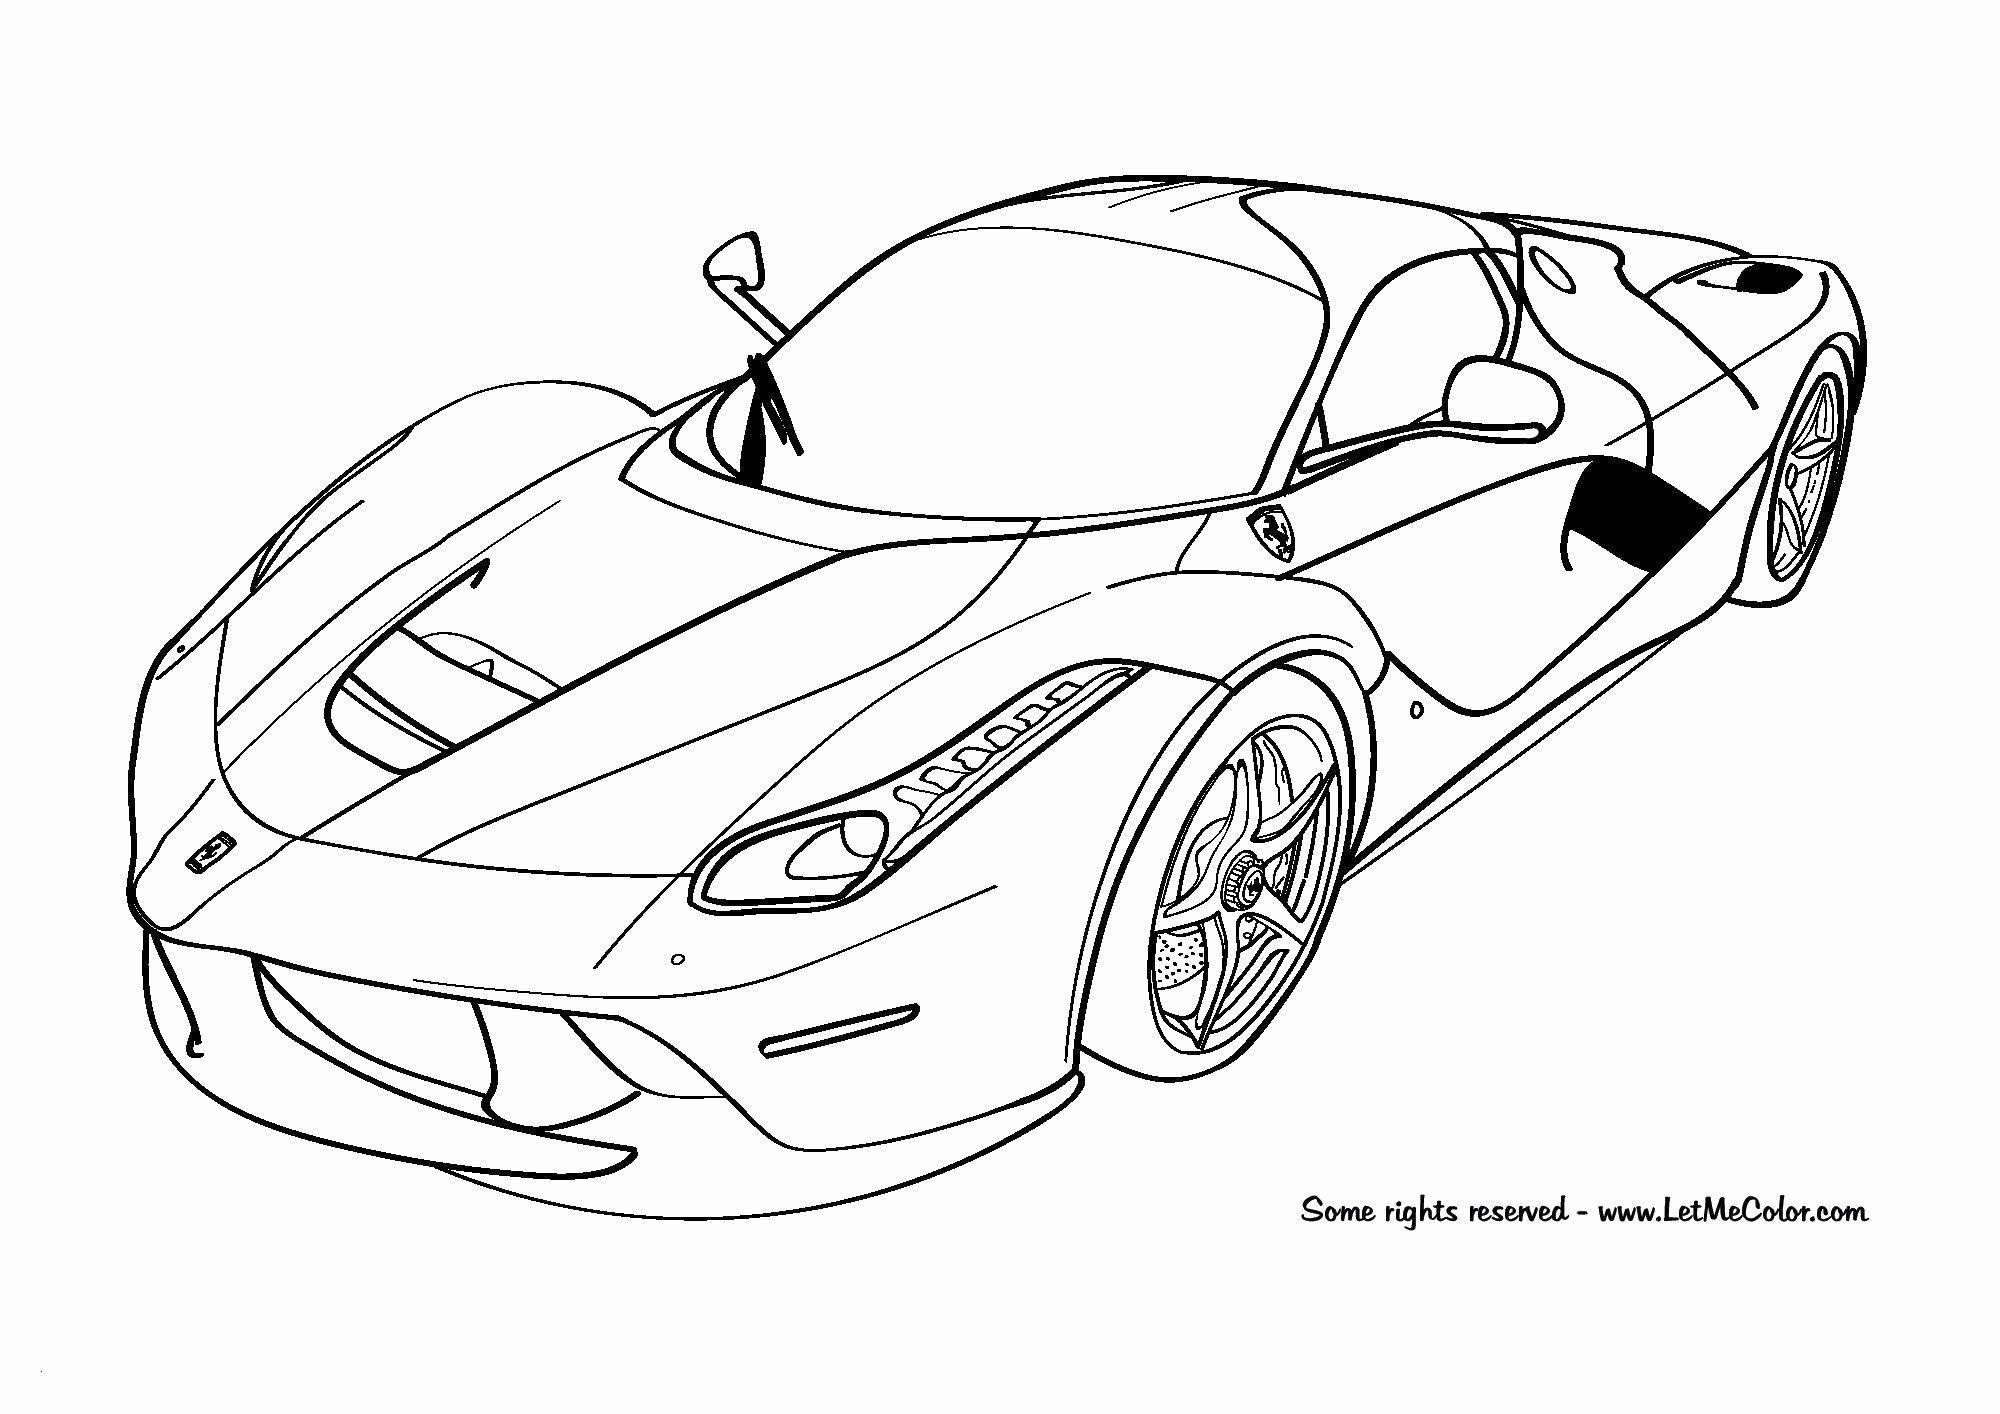 Coloring Pages Of Sport Cars Elegant Lamborghini Coloring Page In 2020 Cars Coloring Pages Sports Coloring Pages Race Car Coloring Pages